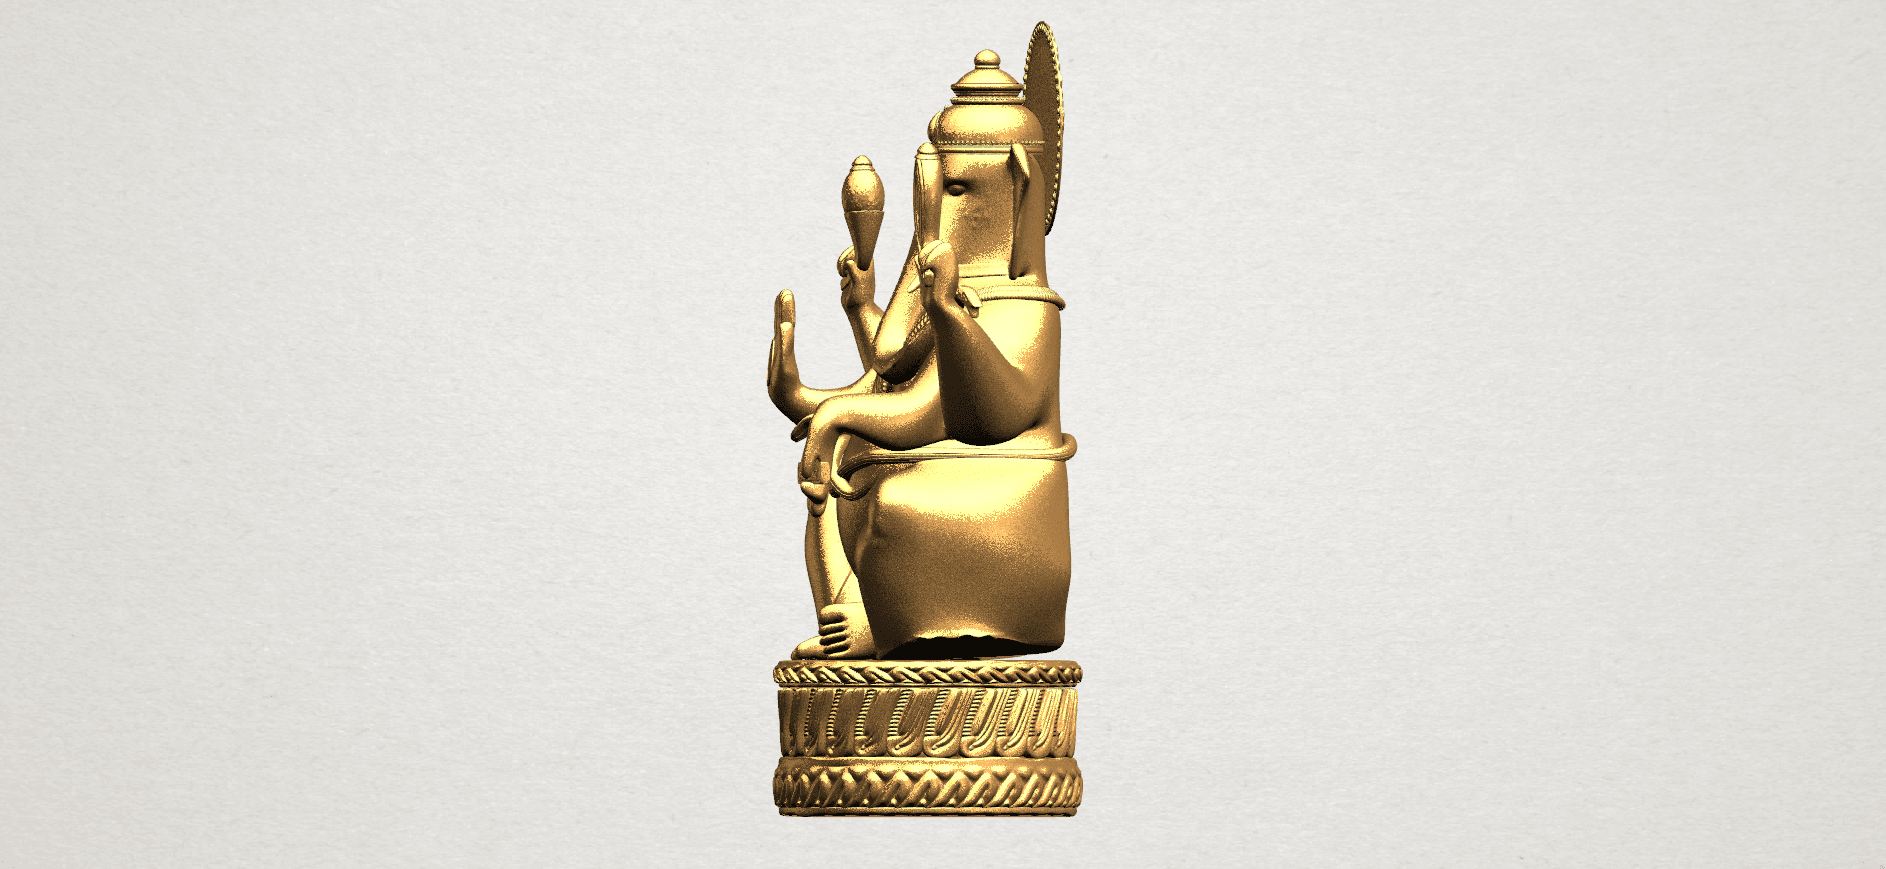 Ganesha A03.png Download free STL file Ganesha 01 • 3D printing template, GeorgesNikkei